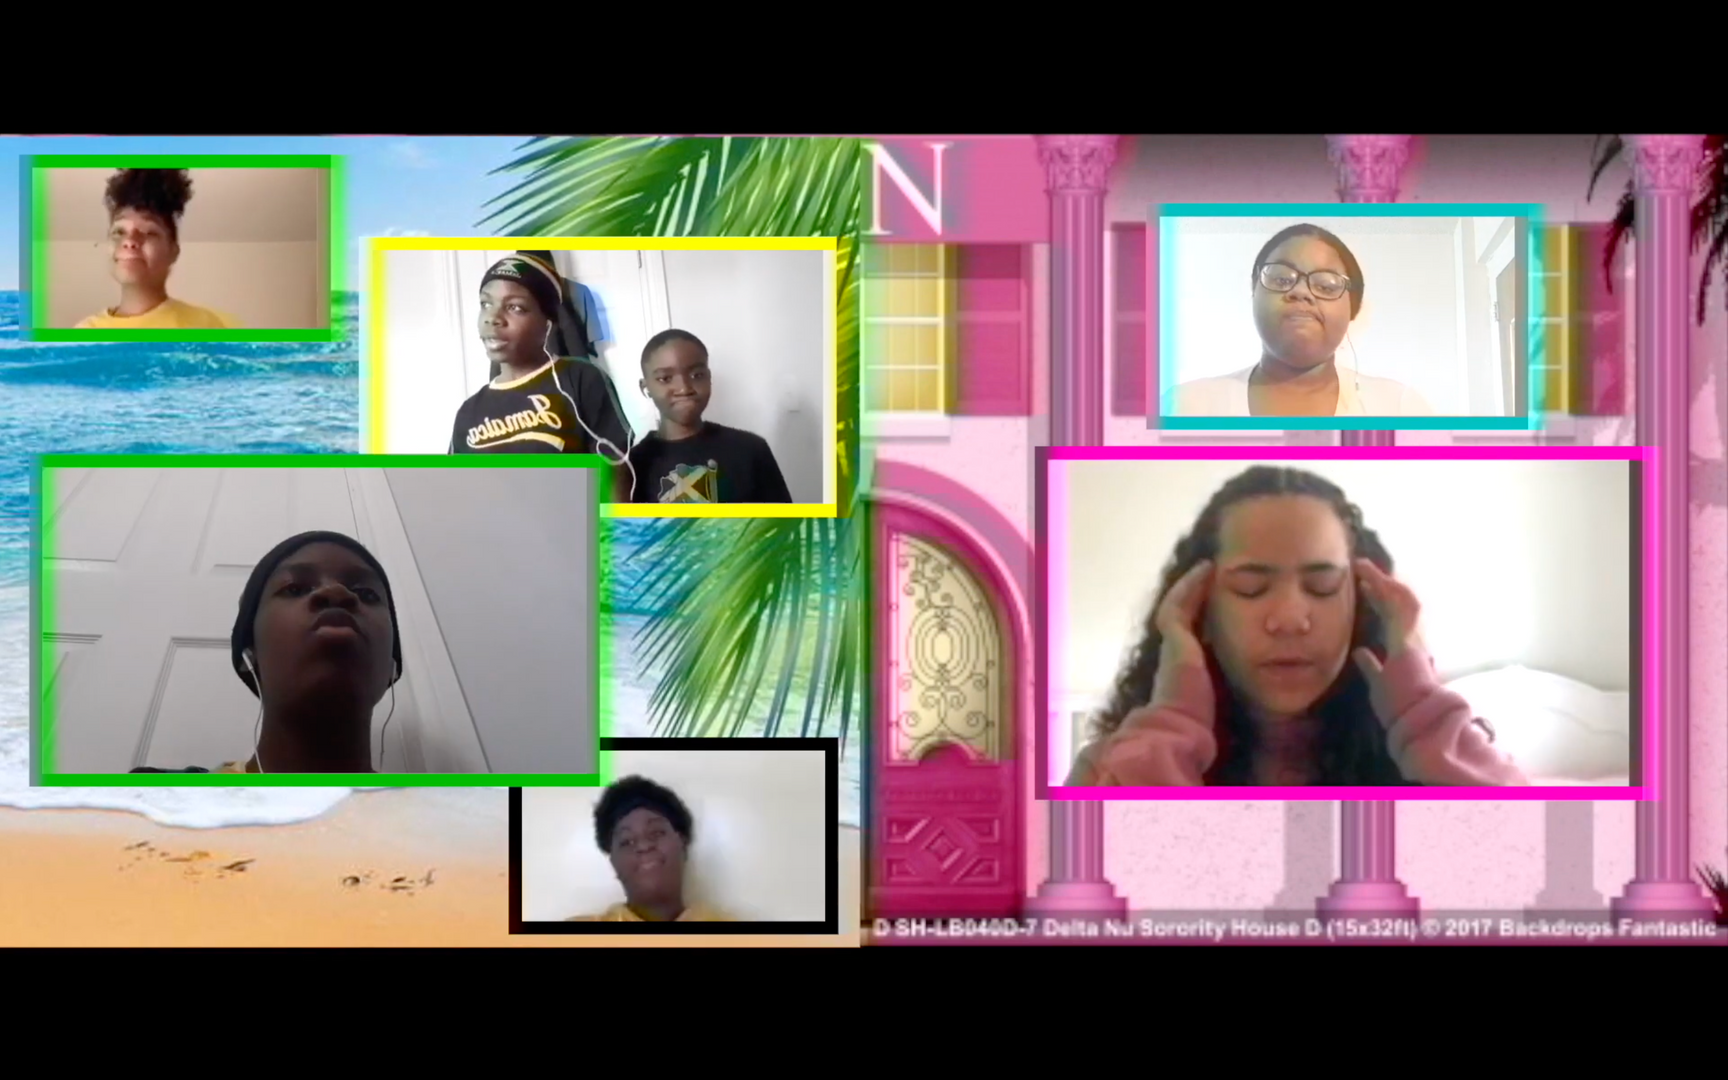 Students in virtual screen boxes in front of a split-screen background of a beach and sorority house